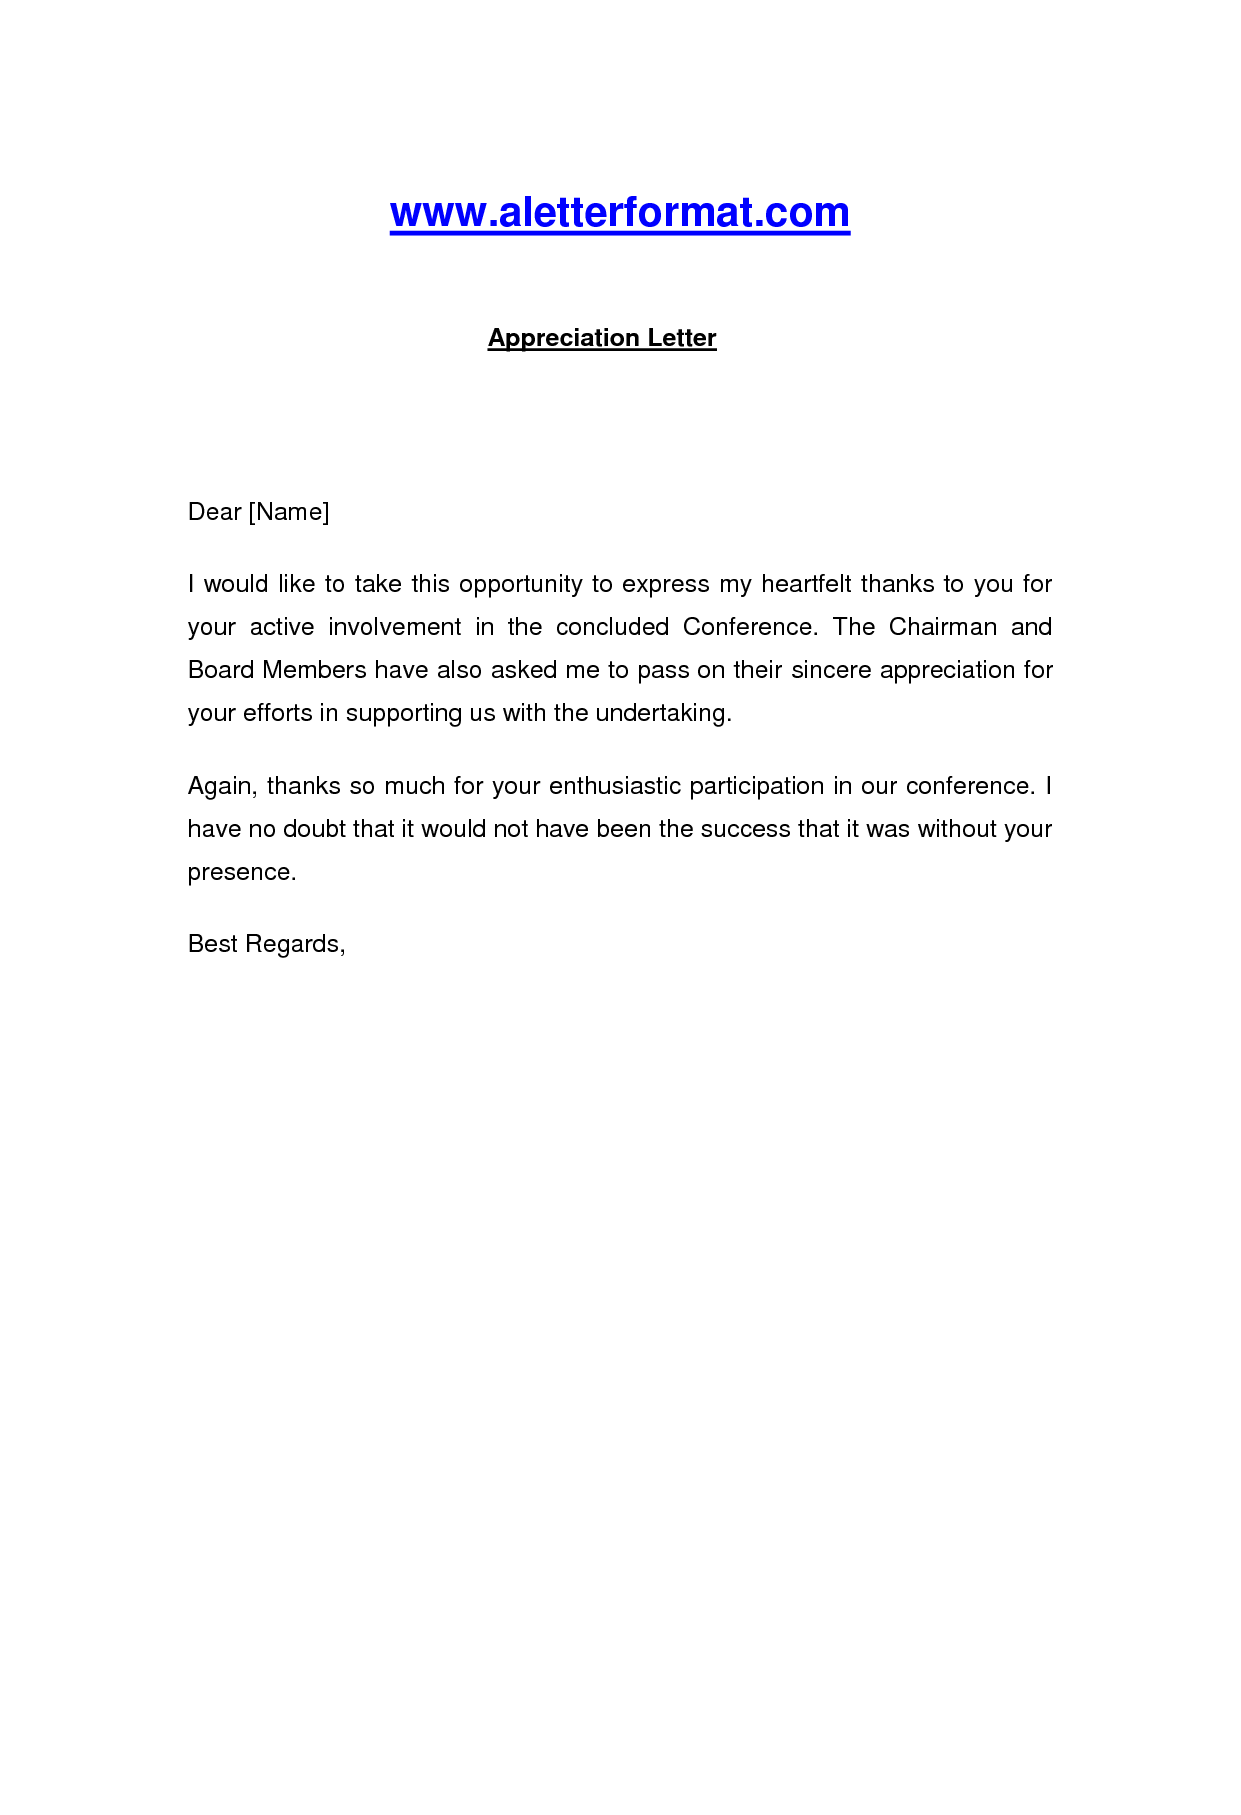 Appreciation Letter | Appreciation Letter Appreciation Letter For Active Involvement